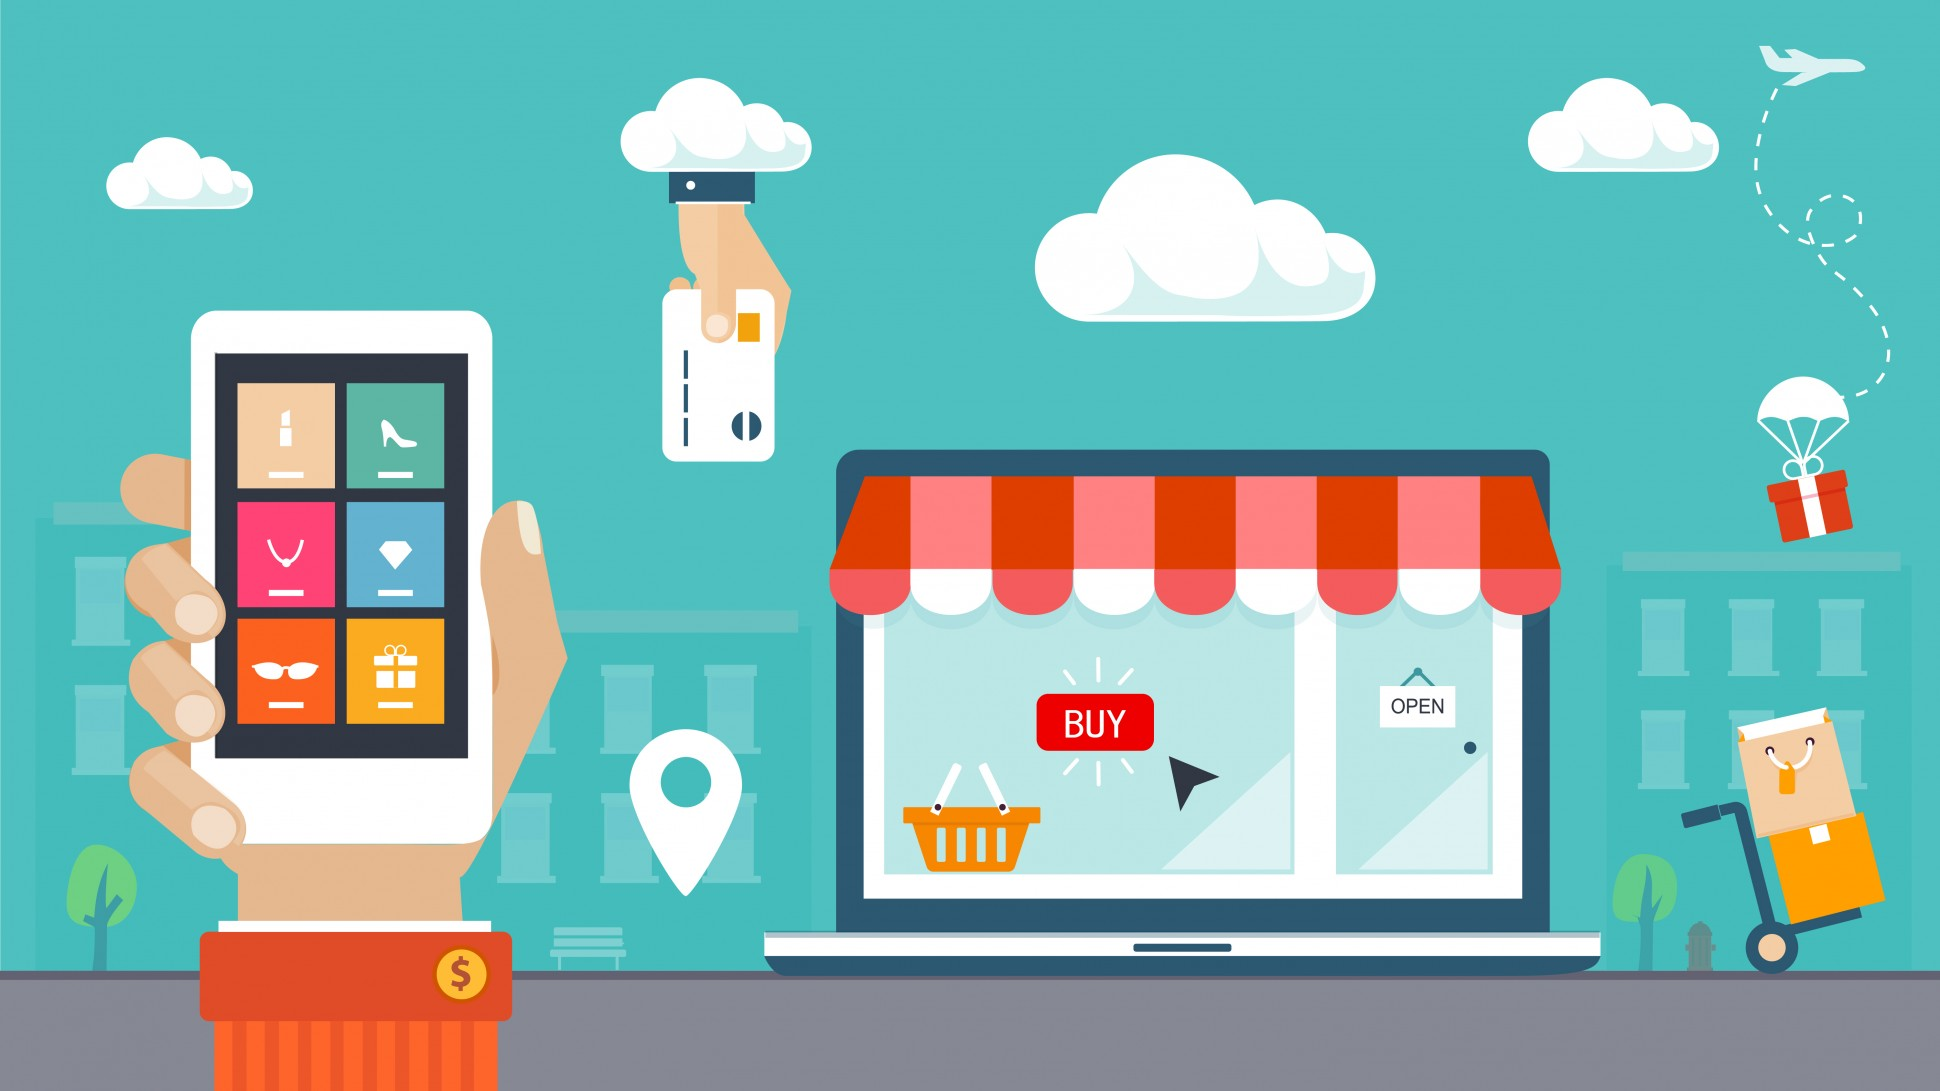 Traditional retailers crush ecommerce giants in omnichannel shopping